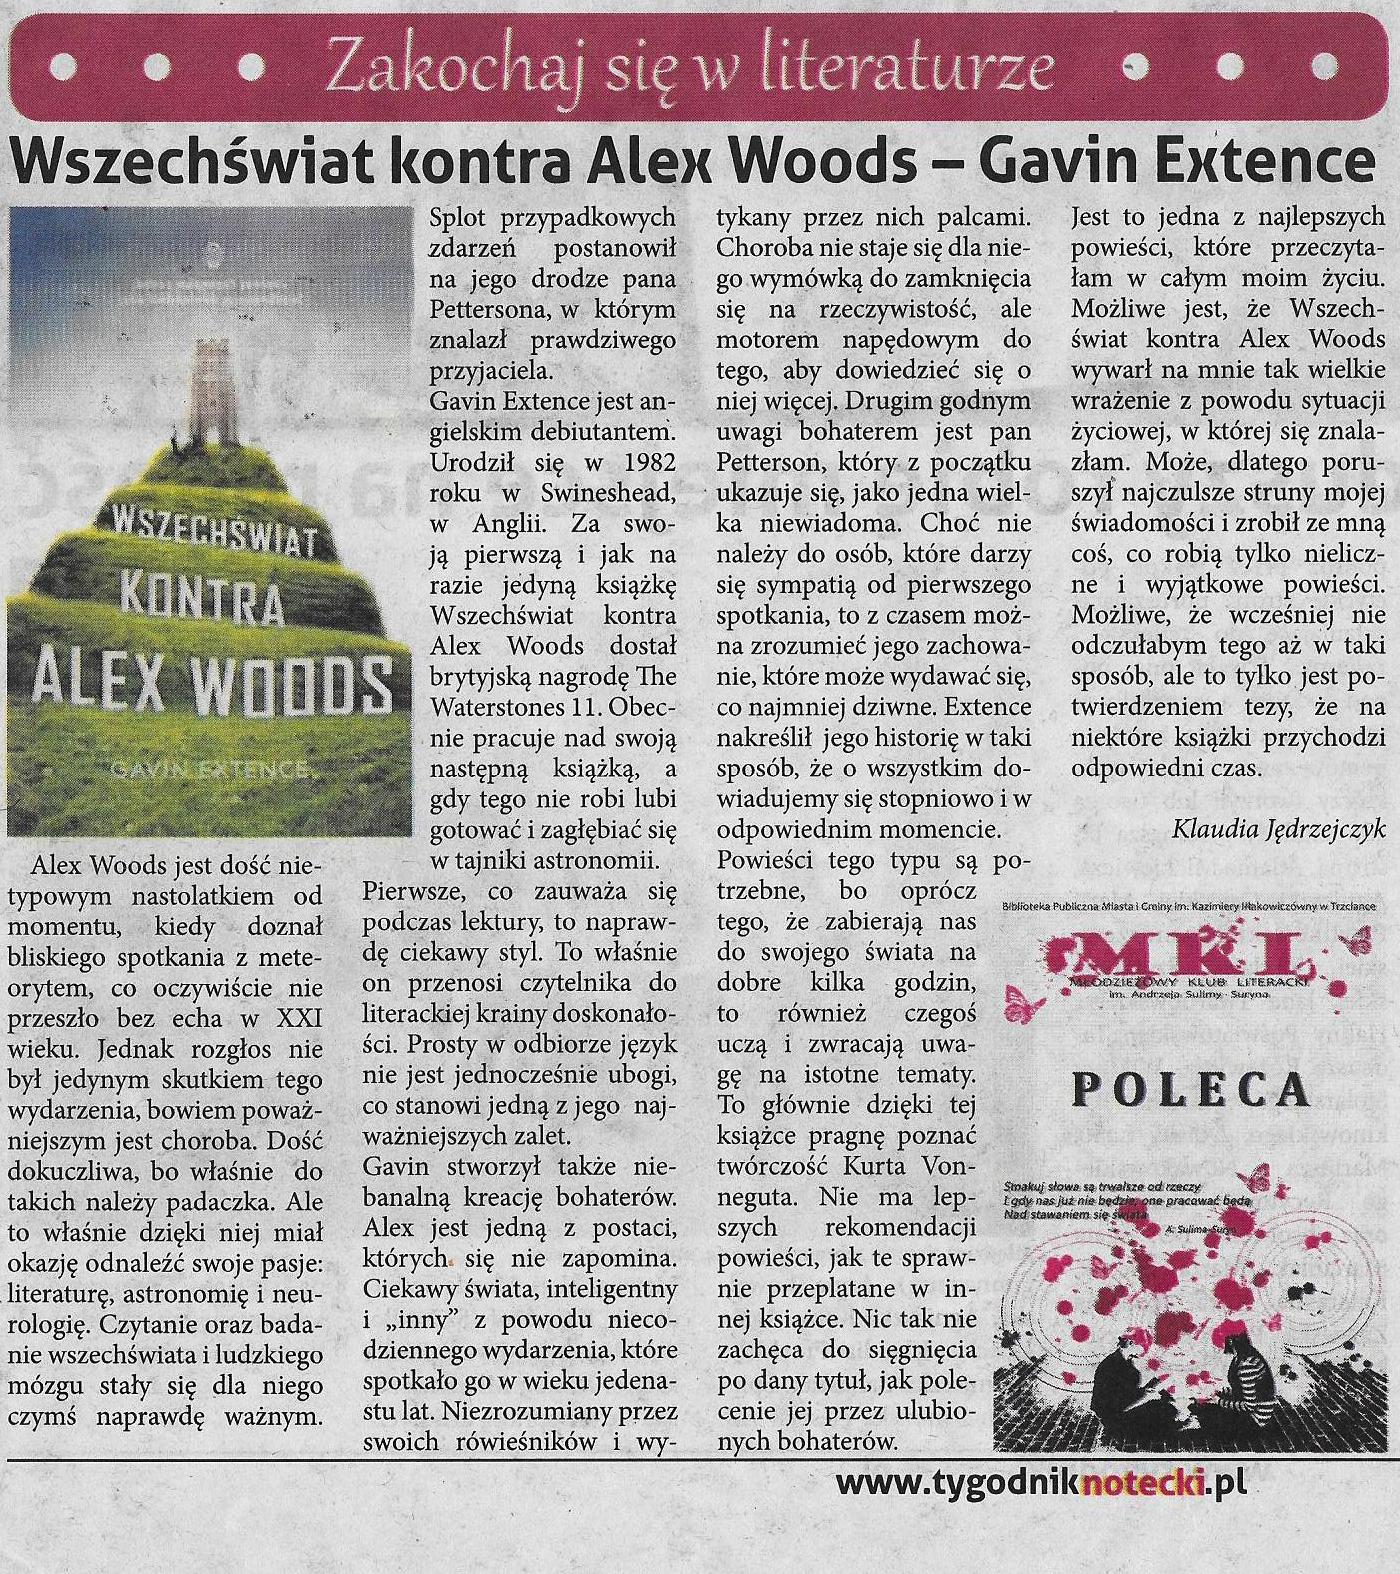 Photo: http://szeptksiazek.blogspot.com/2014/06/wszechswiat-kontra-alex-woods-gavin.html